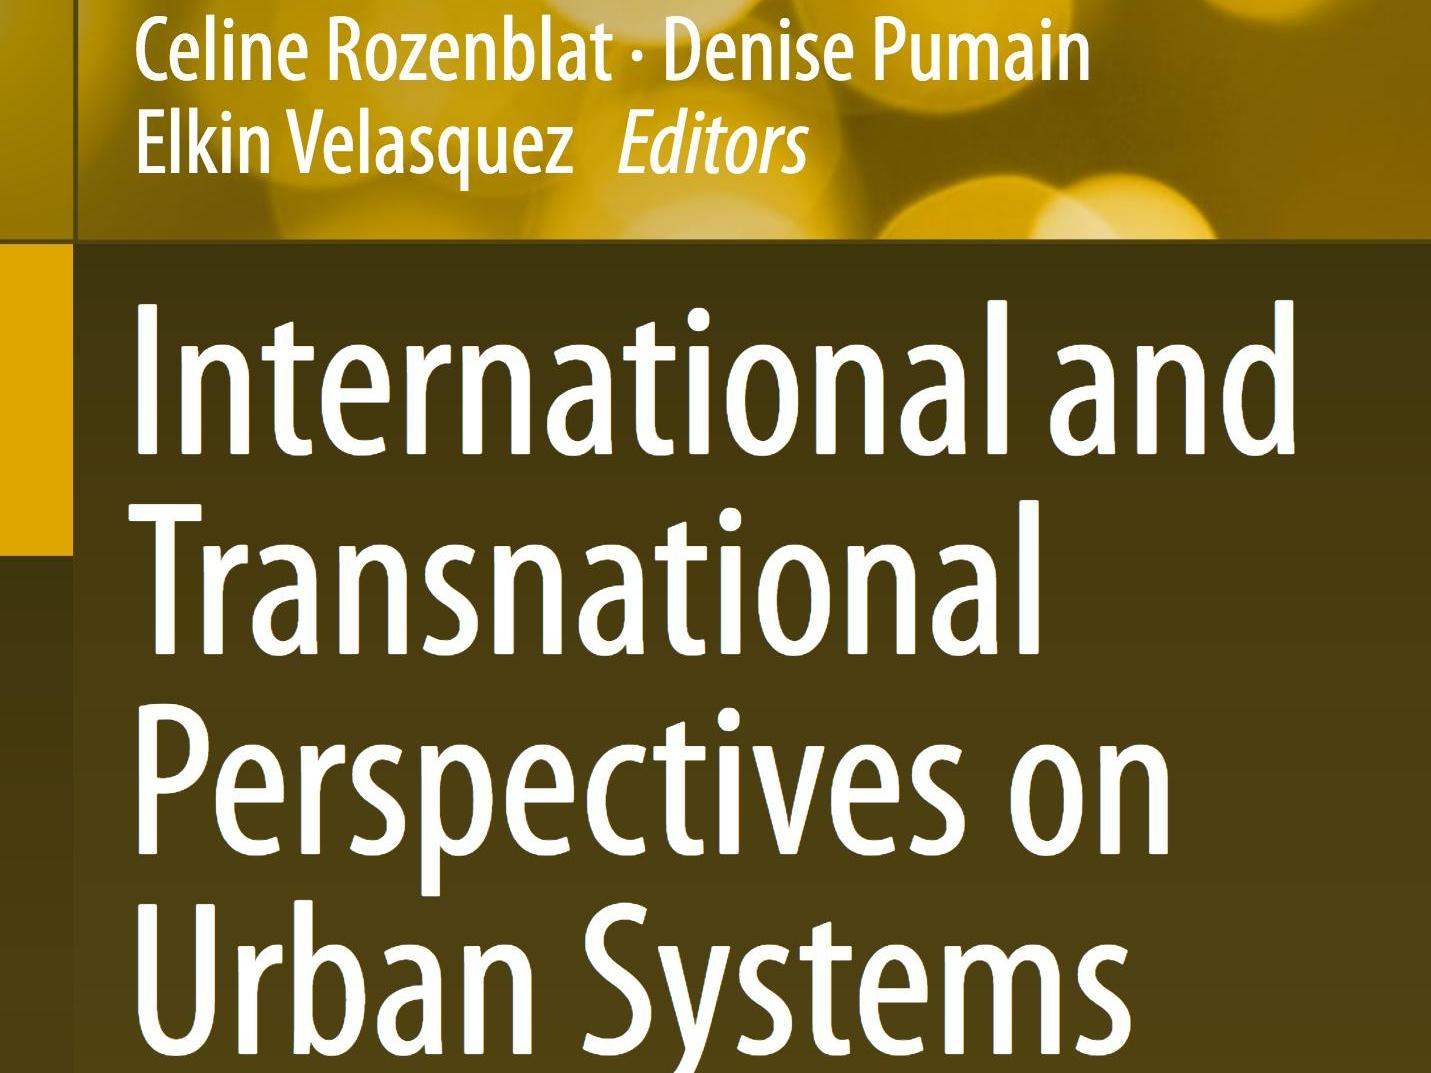 Publication of the book : International and Transnational Perspectives on Urban Systems